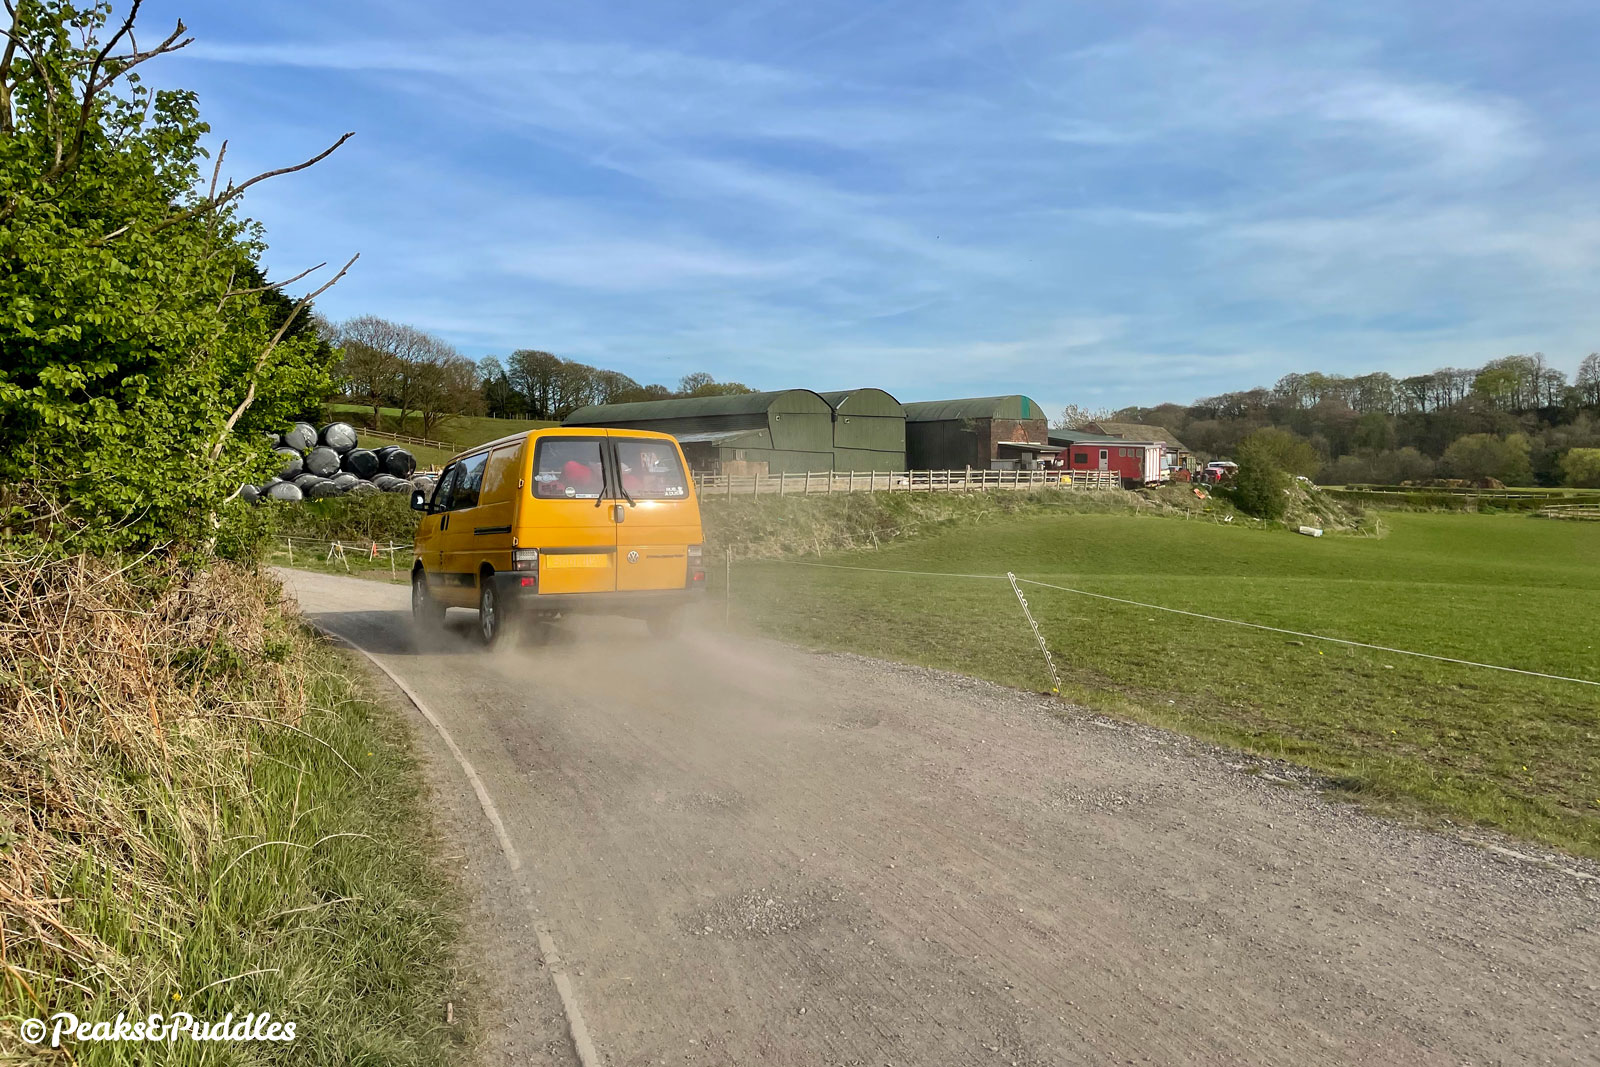 It's worth noting this is not an entirely traffic-free route: vehicles can be encountered on the farm tracks and are not always willing to give much space.